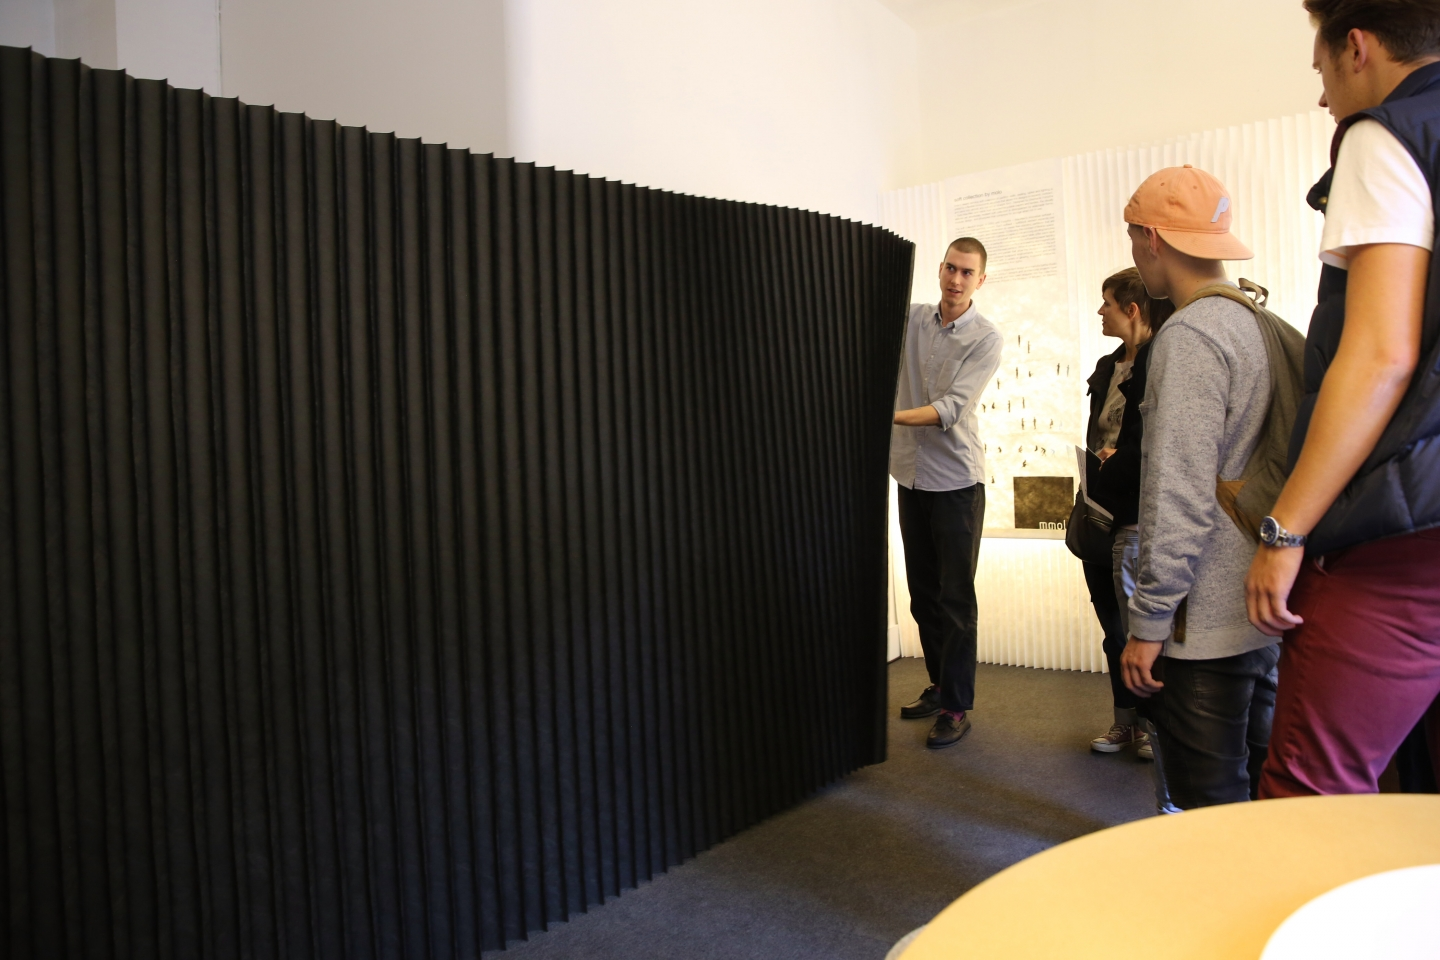 stretching open a softwall at Design Junction London - paper / textile acoustic wall partition in black by molo